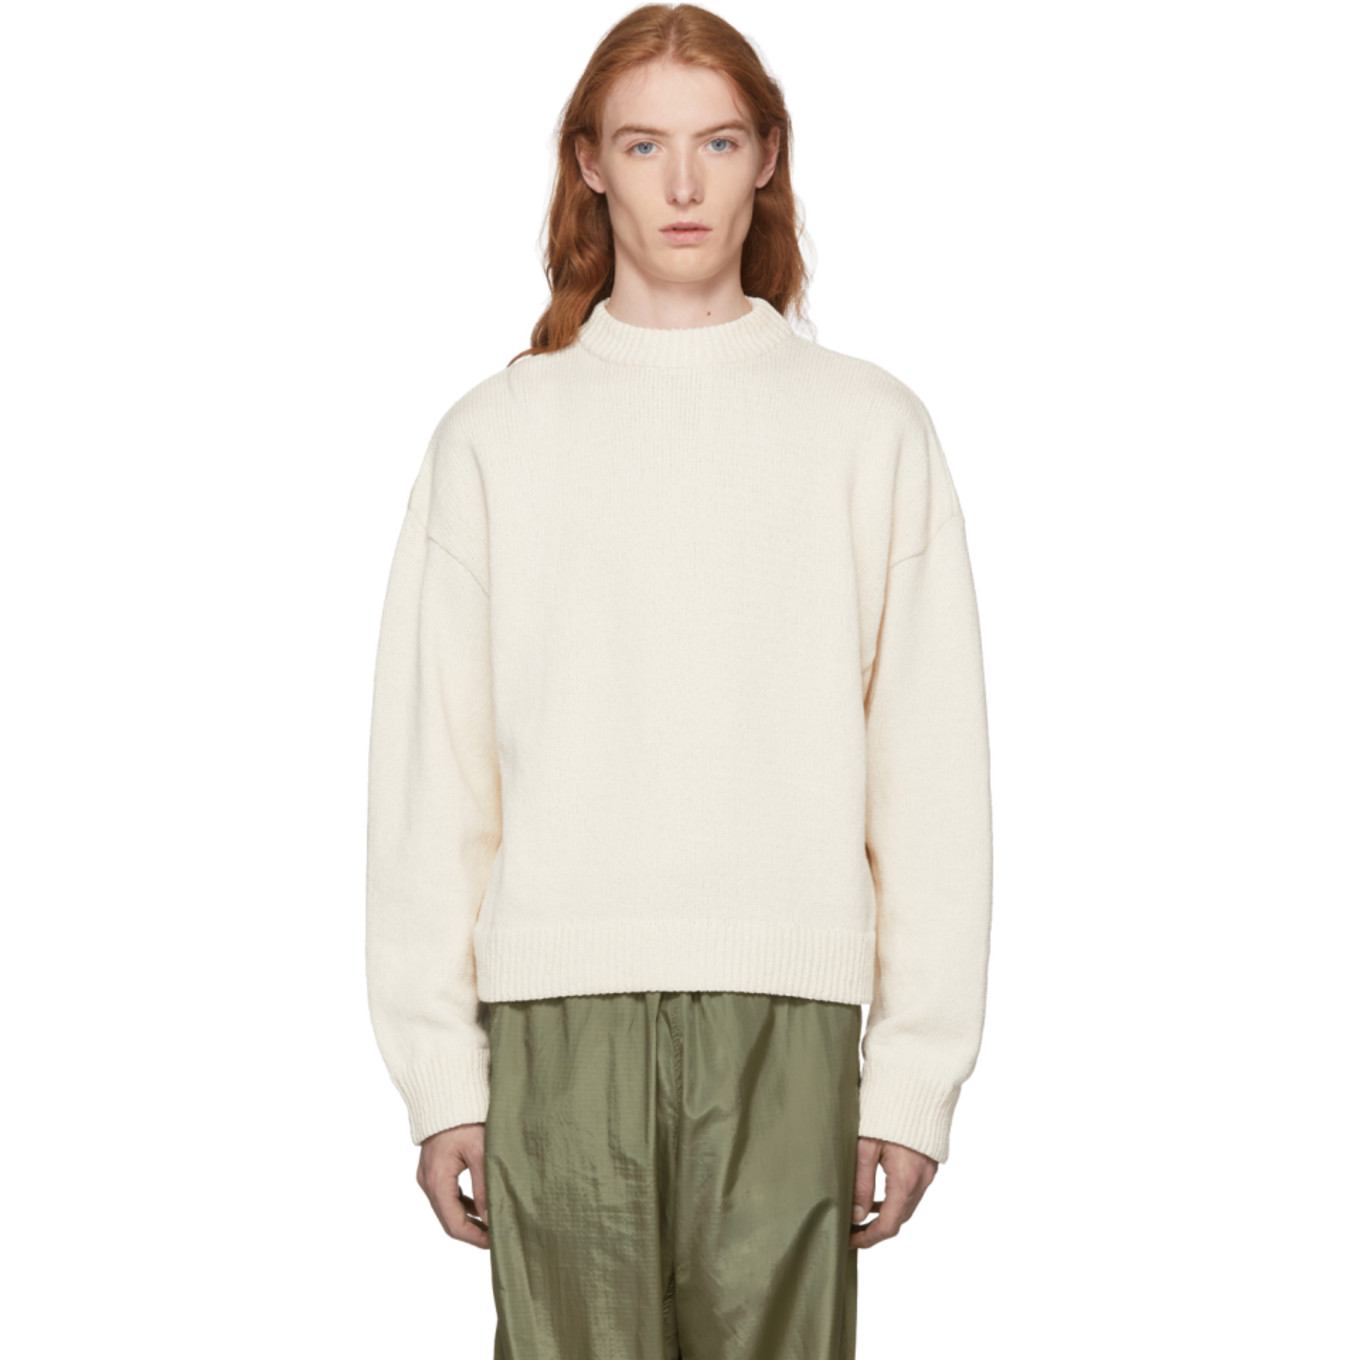 Off White Sonar Roundneck Sweater by Our Legacy